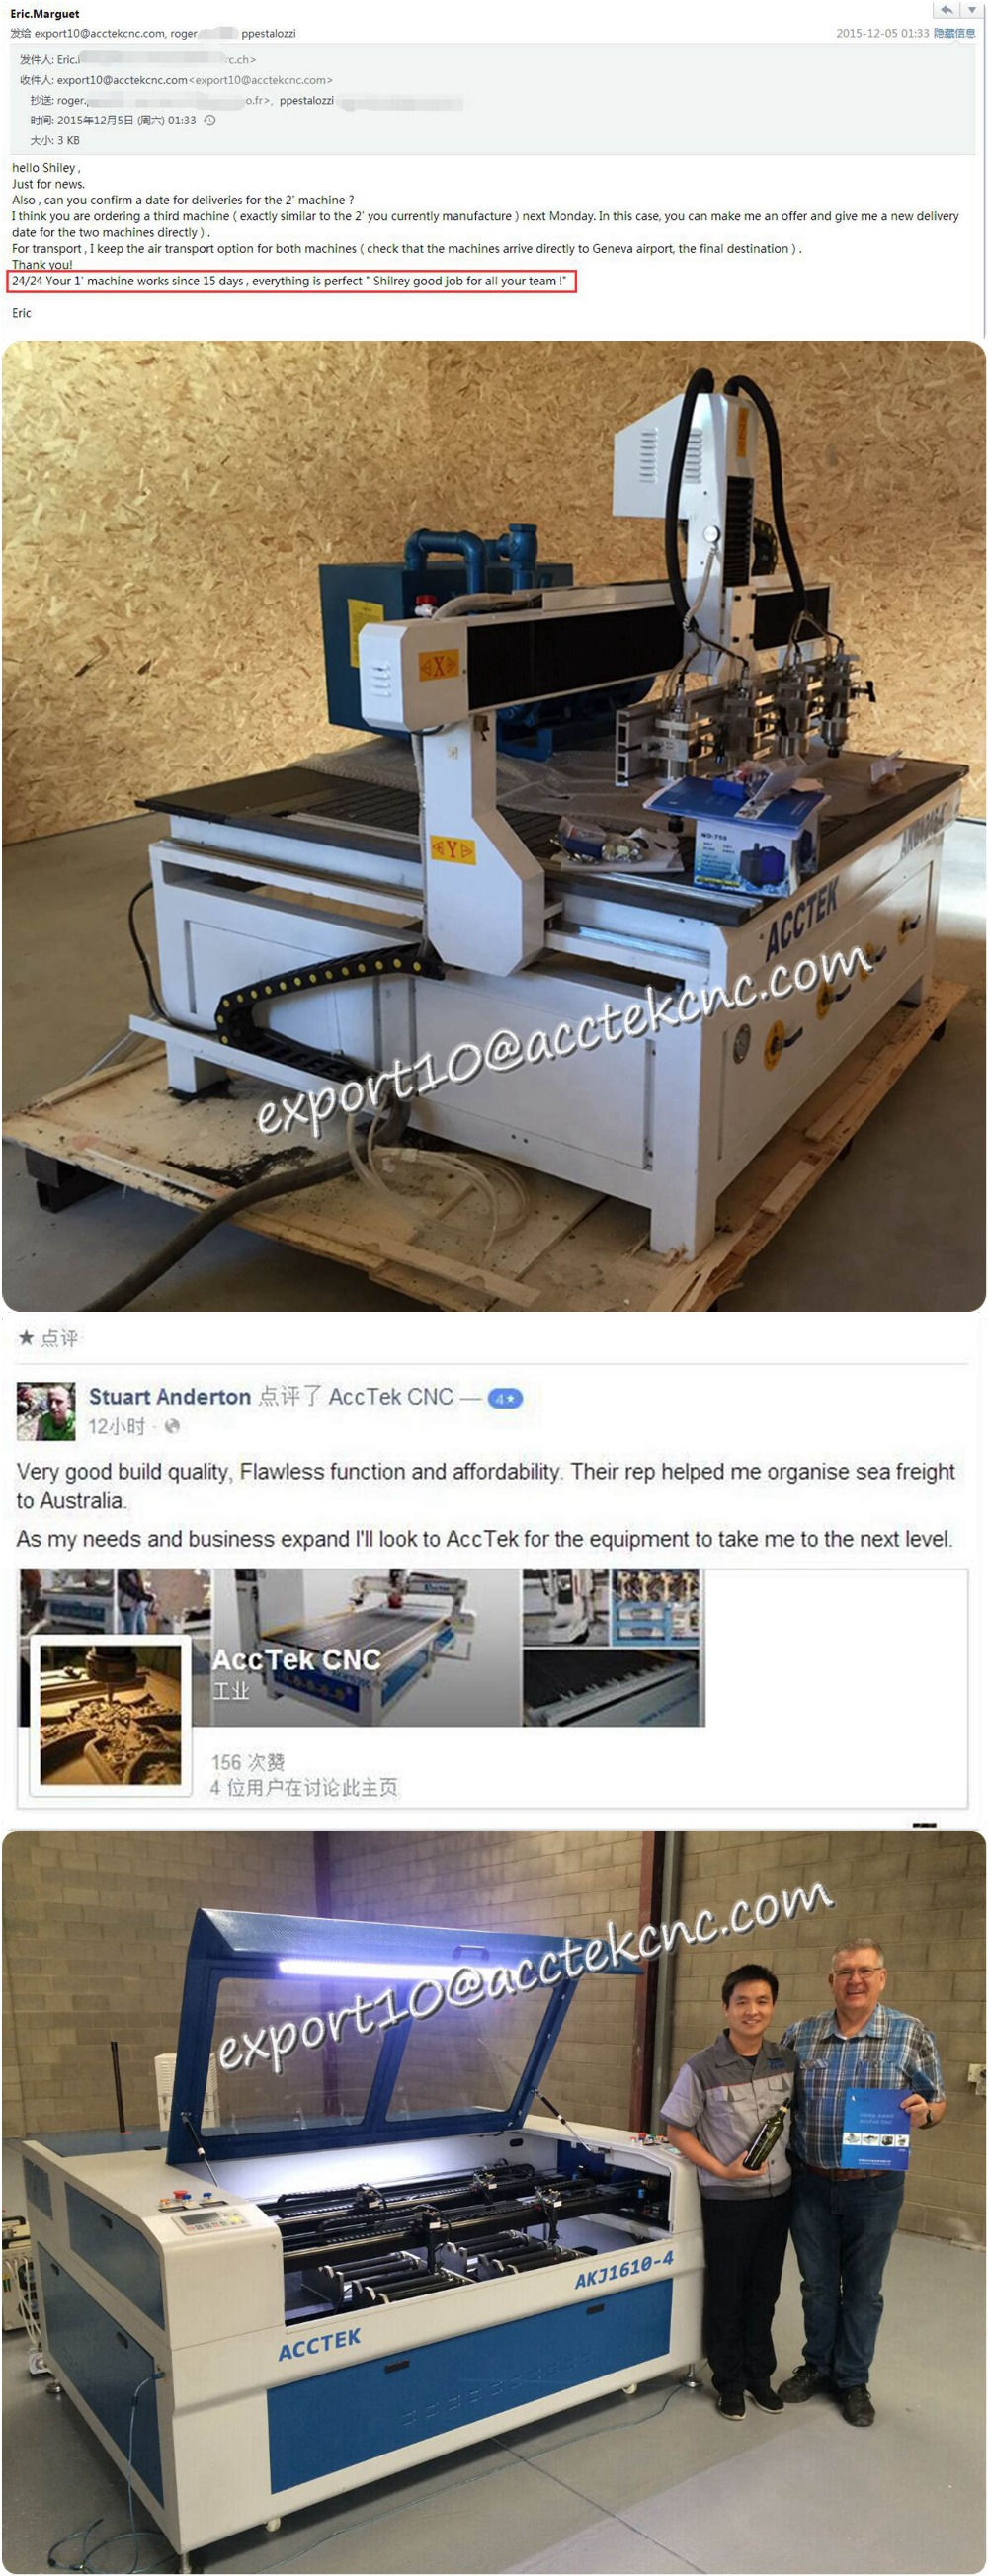 3.Acctek Machinery Happy user show